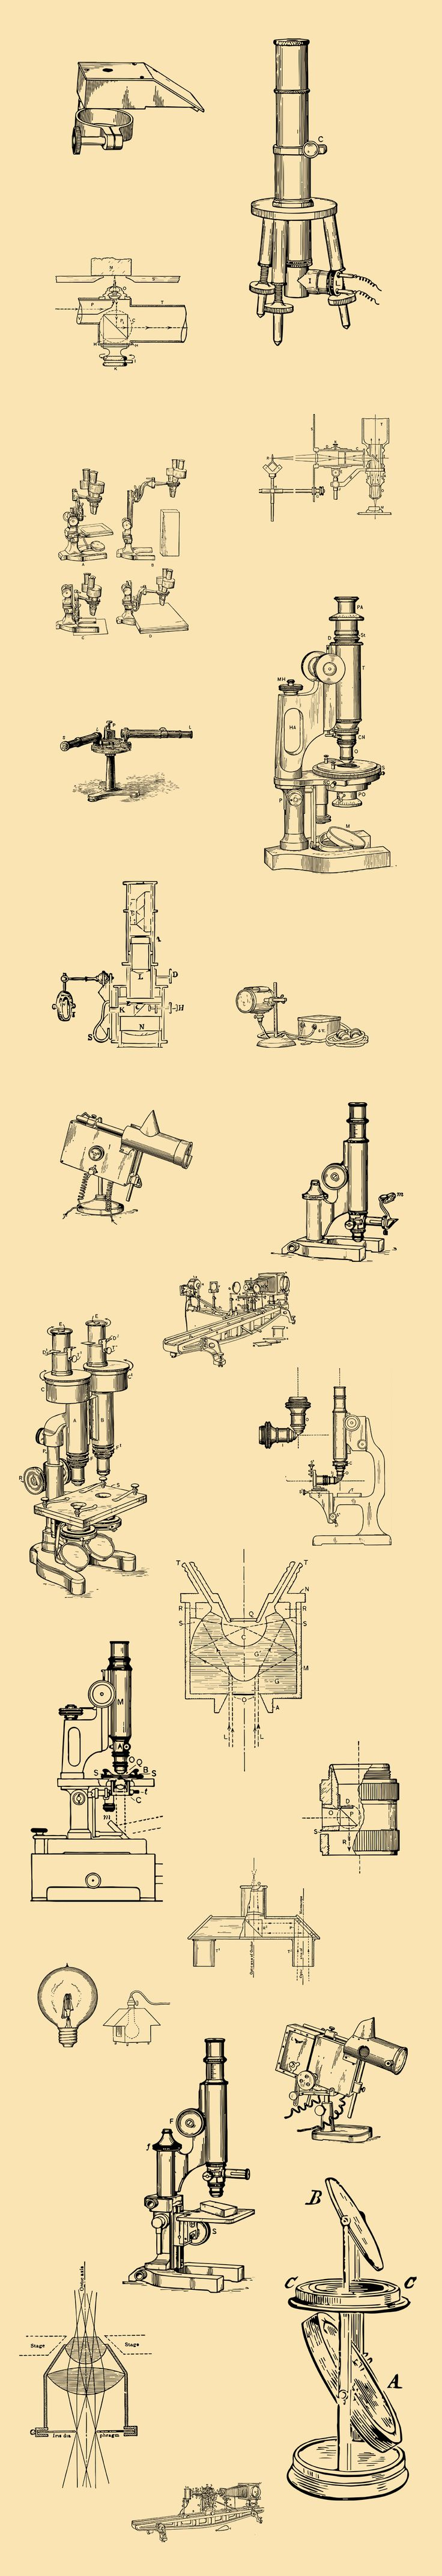 Vintage Optical Devices Illustrations [59 Items] | #vector #illustration #masterbundles